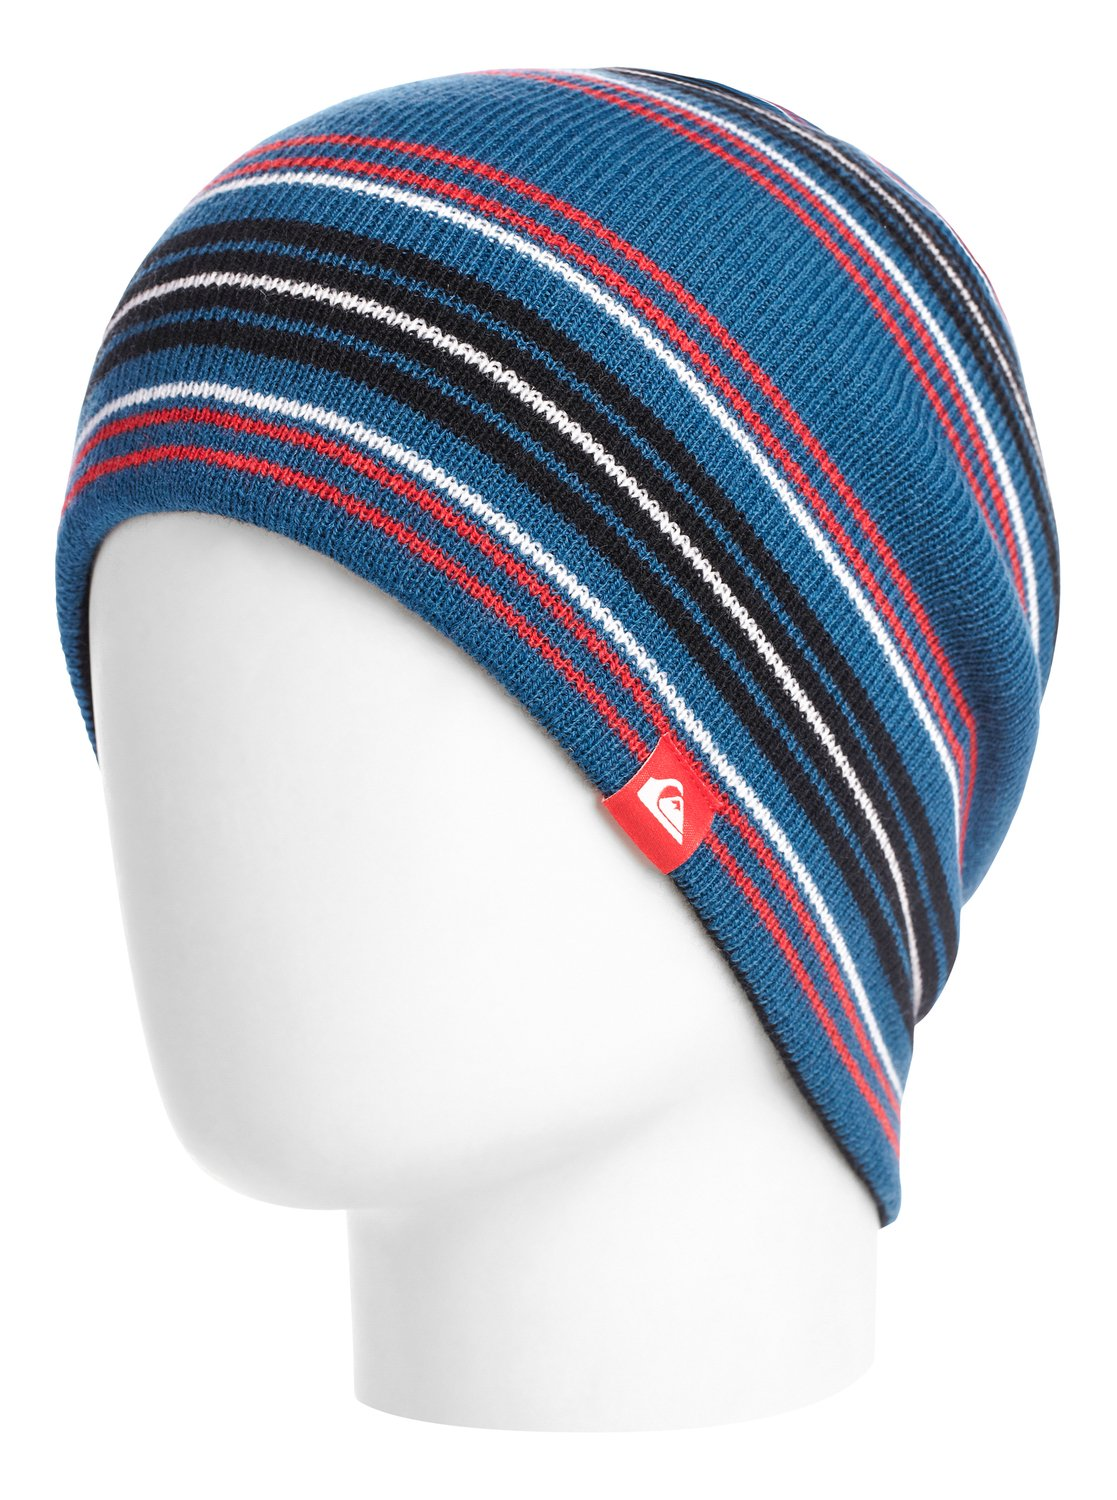 b1067423030 0 Preference Reversible Youth Beanie EQBHA00004 Quiksilver